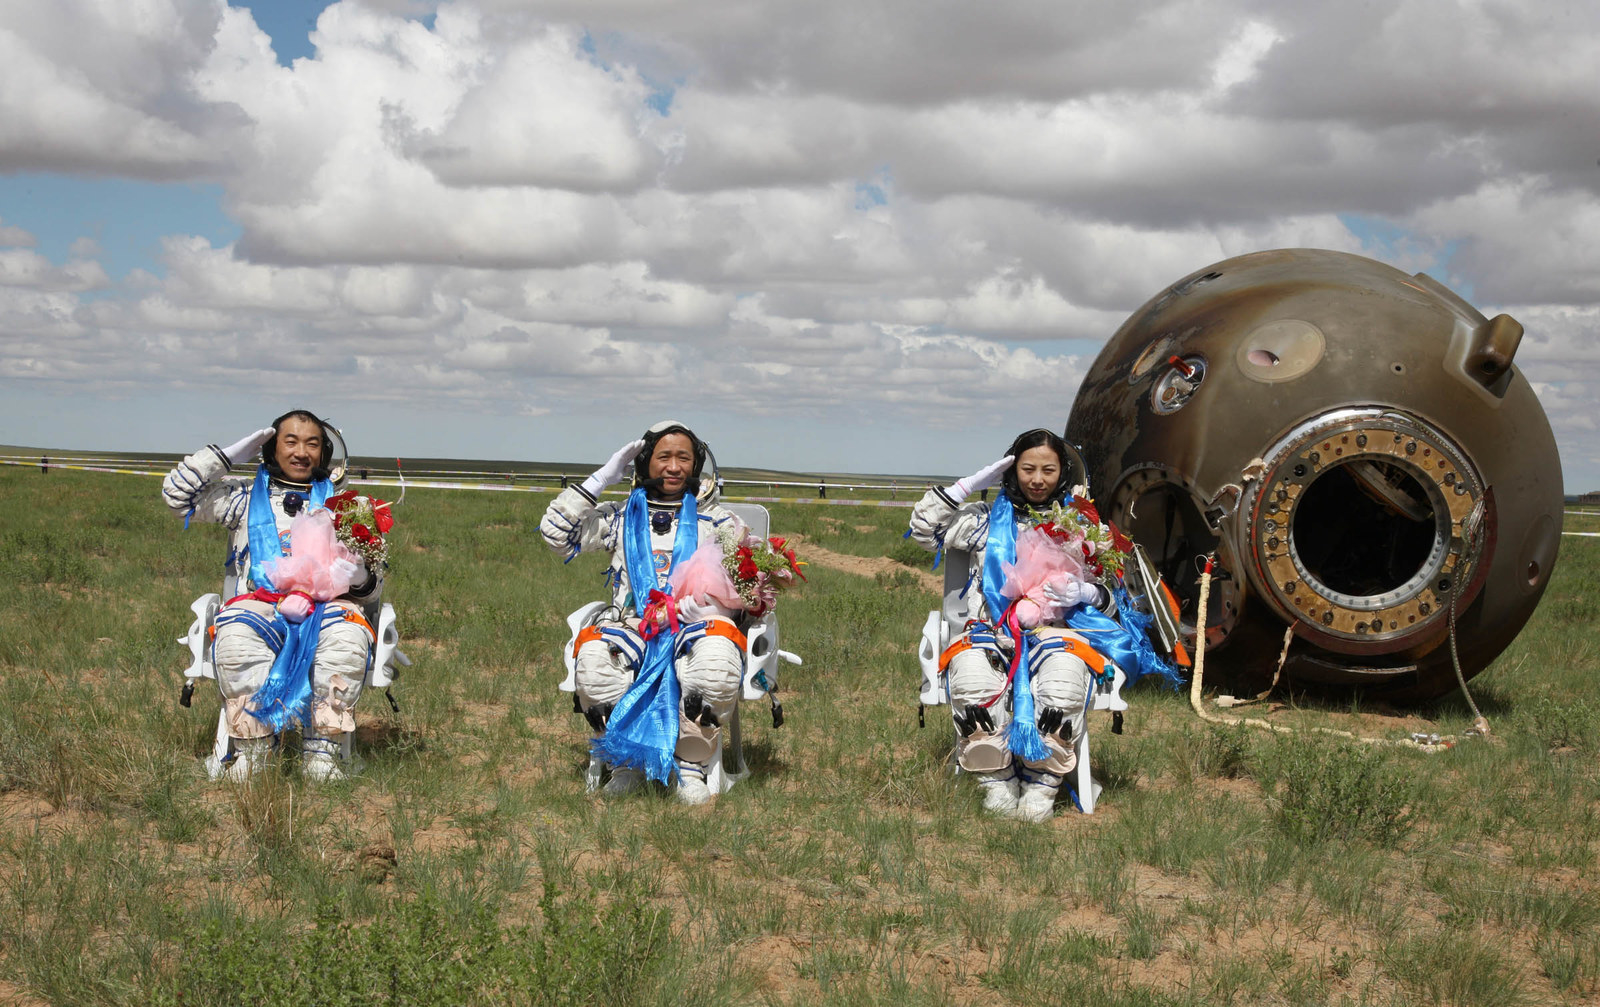 2013 Chinese astronauts Zhang Xiaoguang, Nie Haisheng, and Wang Yaping salute after getting out of the re-entry capsule of China's Shenzhou X spacecraft following its successful landing at the main landing site on June 26, 2013, in the Inner Mongolia Autonomous Region of China. The astronauts returned after a 15-day trip to a prototype space station.